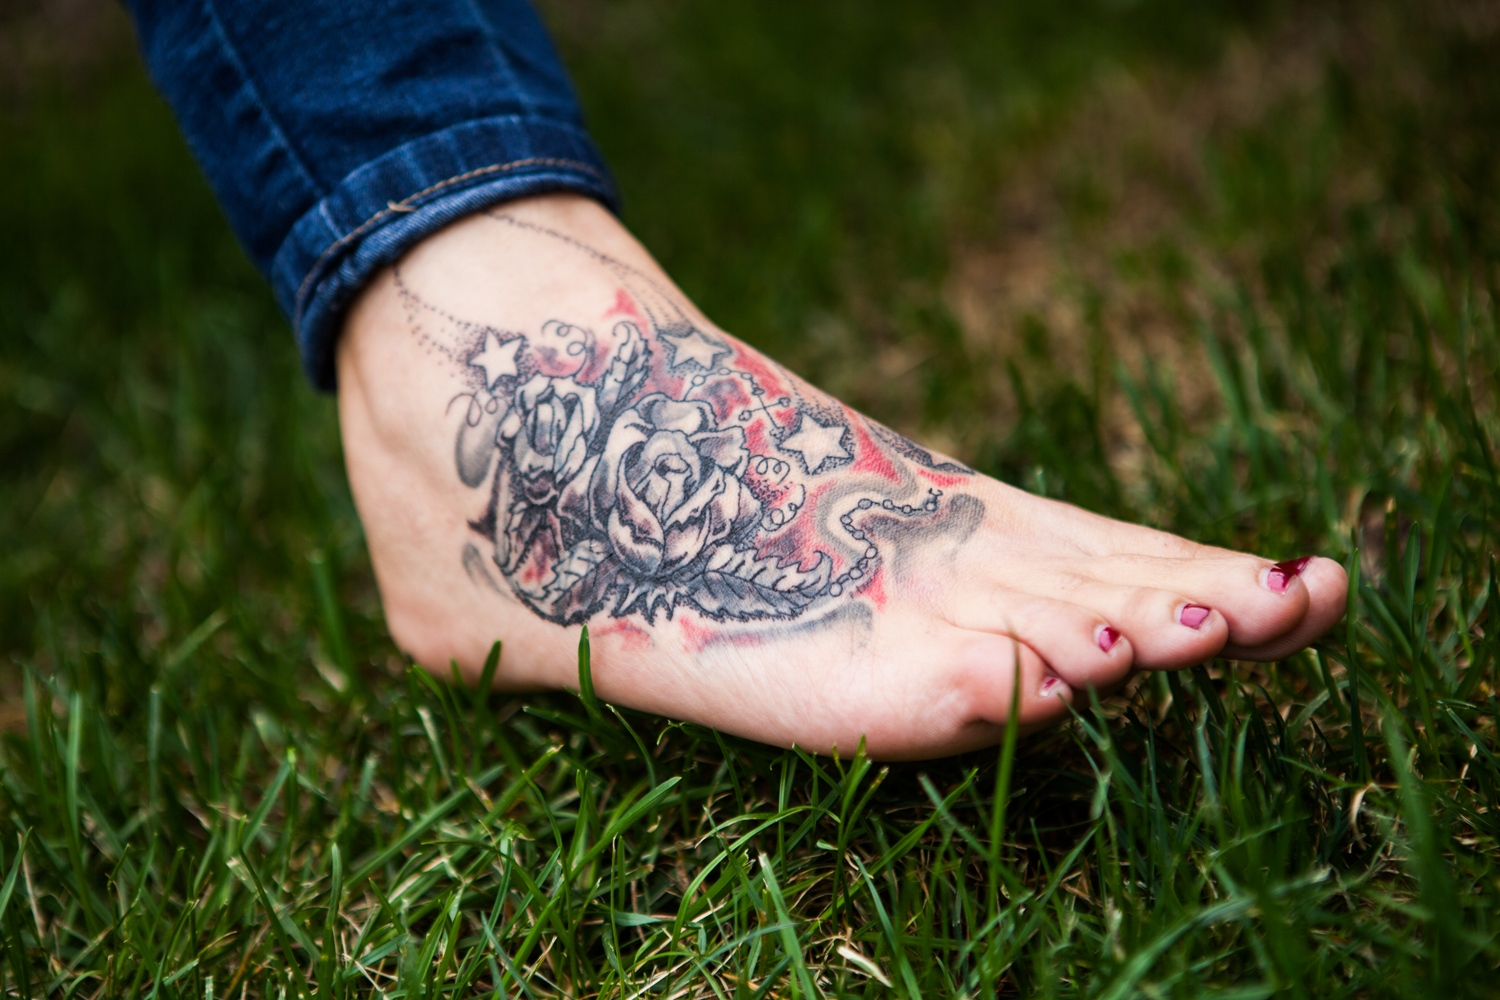 "Christina Brooks, 29, had the name of her ex-husband and trafficker tattooed on her foot. He tattooed it himself on her. Three days ago, recovering from heroin addiction and on track to getting her life back together, Christina had her tattoo covered up by artwork thanks to a Survivors Ink scholarship Lancaster, Ohio, USA. ""I feel like as long as I had his name on my foot he had a claim on me. I've felt so dead inside, but now it's like a new chapter is starting,"" she says. ""It's just overwhelming, all of this. That I get to choose what goes on my body this time. That it's finally over."" Her divorce papers were approved recently and she reunited with her two baby girls."